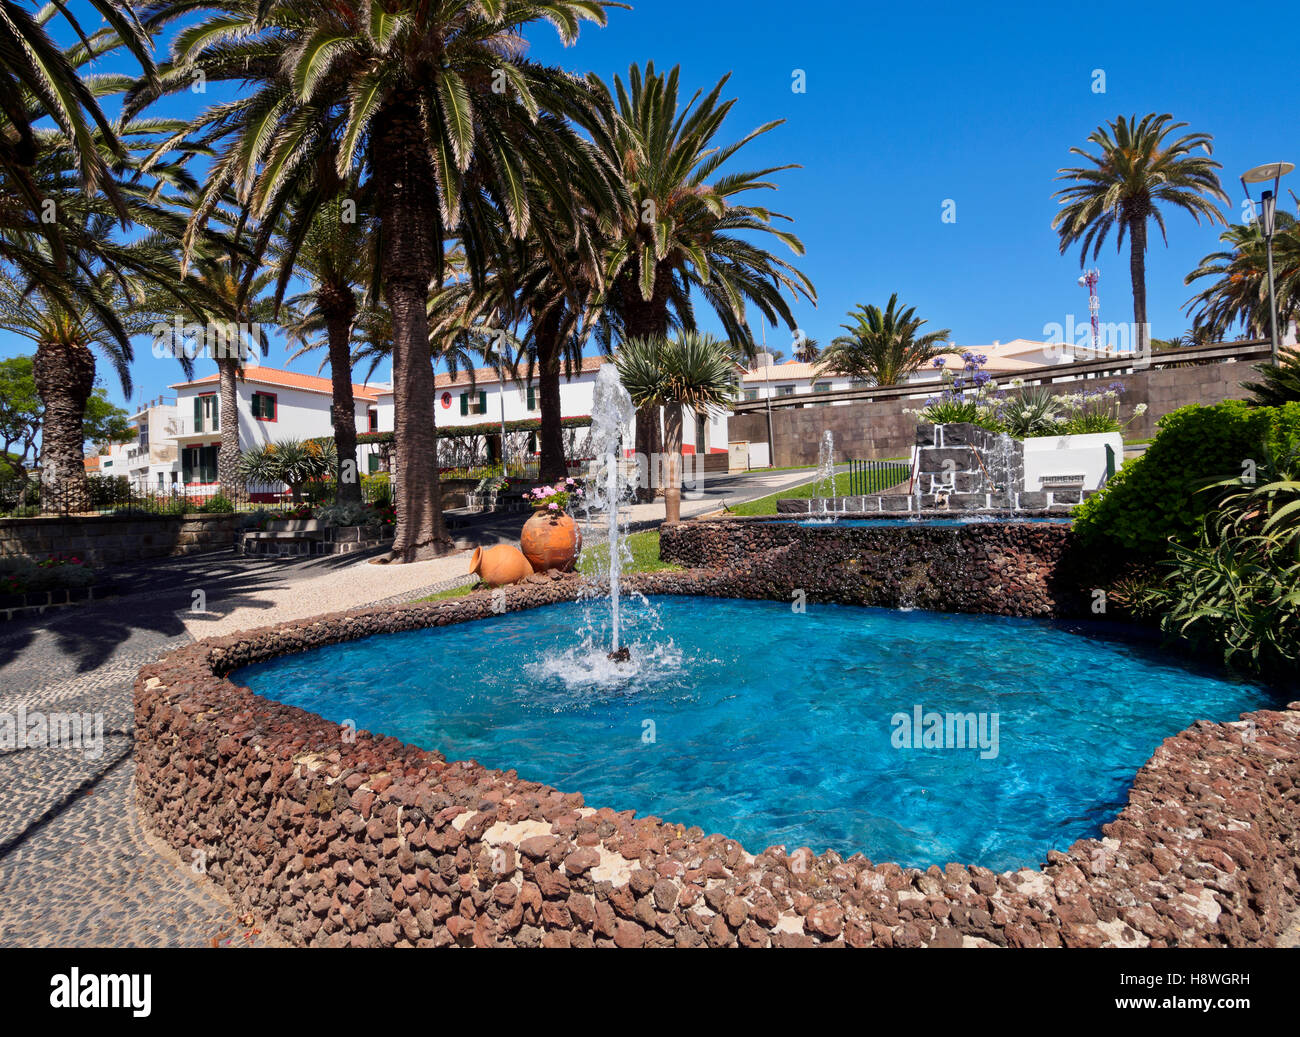 Portugal, Madeira Islands, Porto Santo, View of the Vila Baleira. - Stock Image